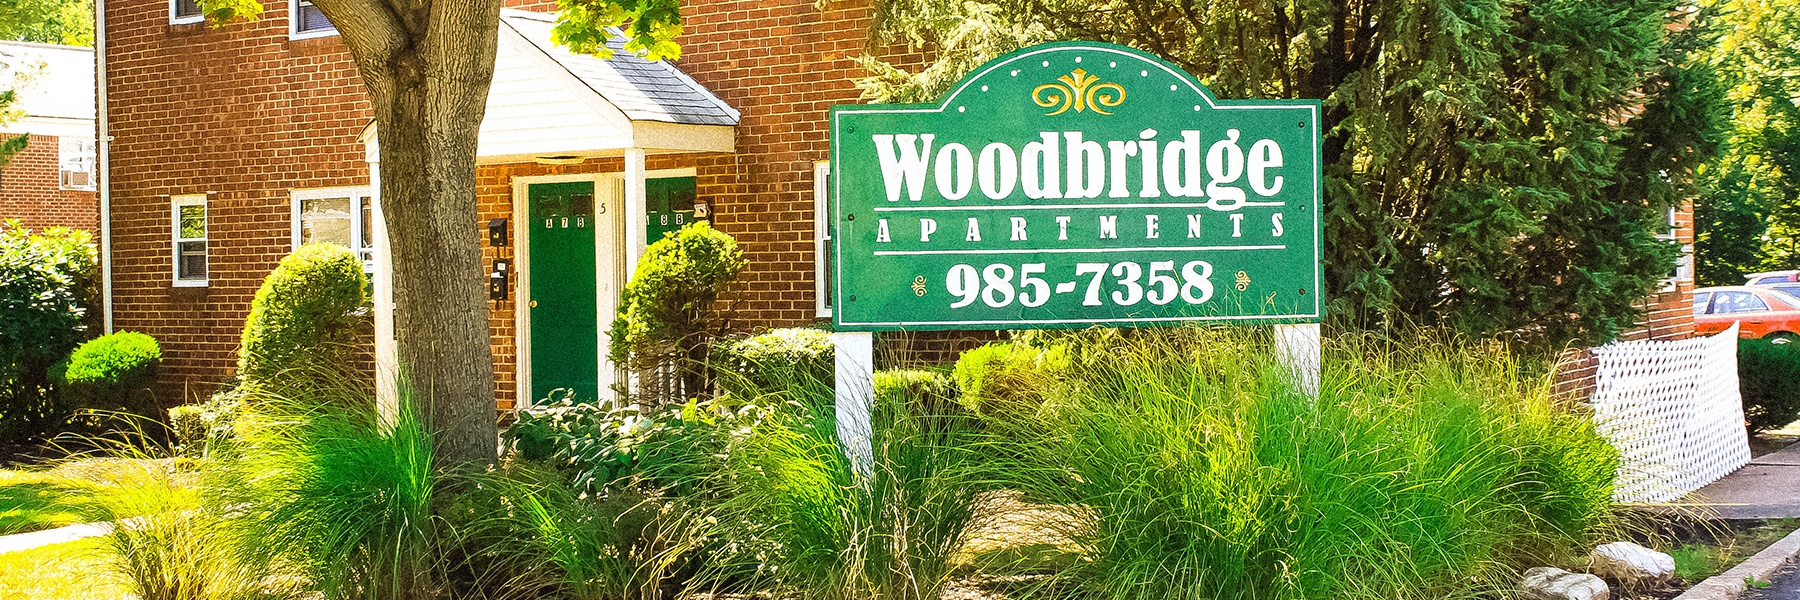 Woodbridge Apartments Entrance